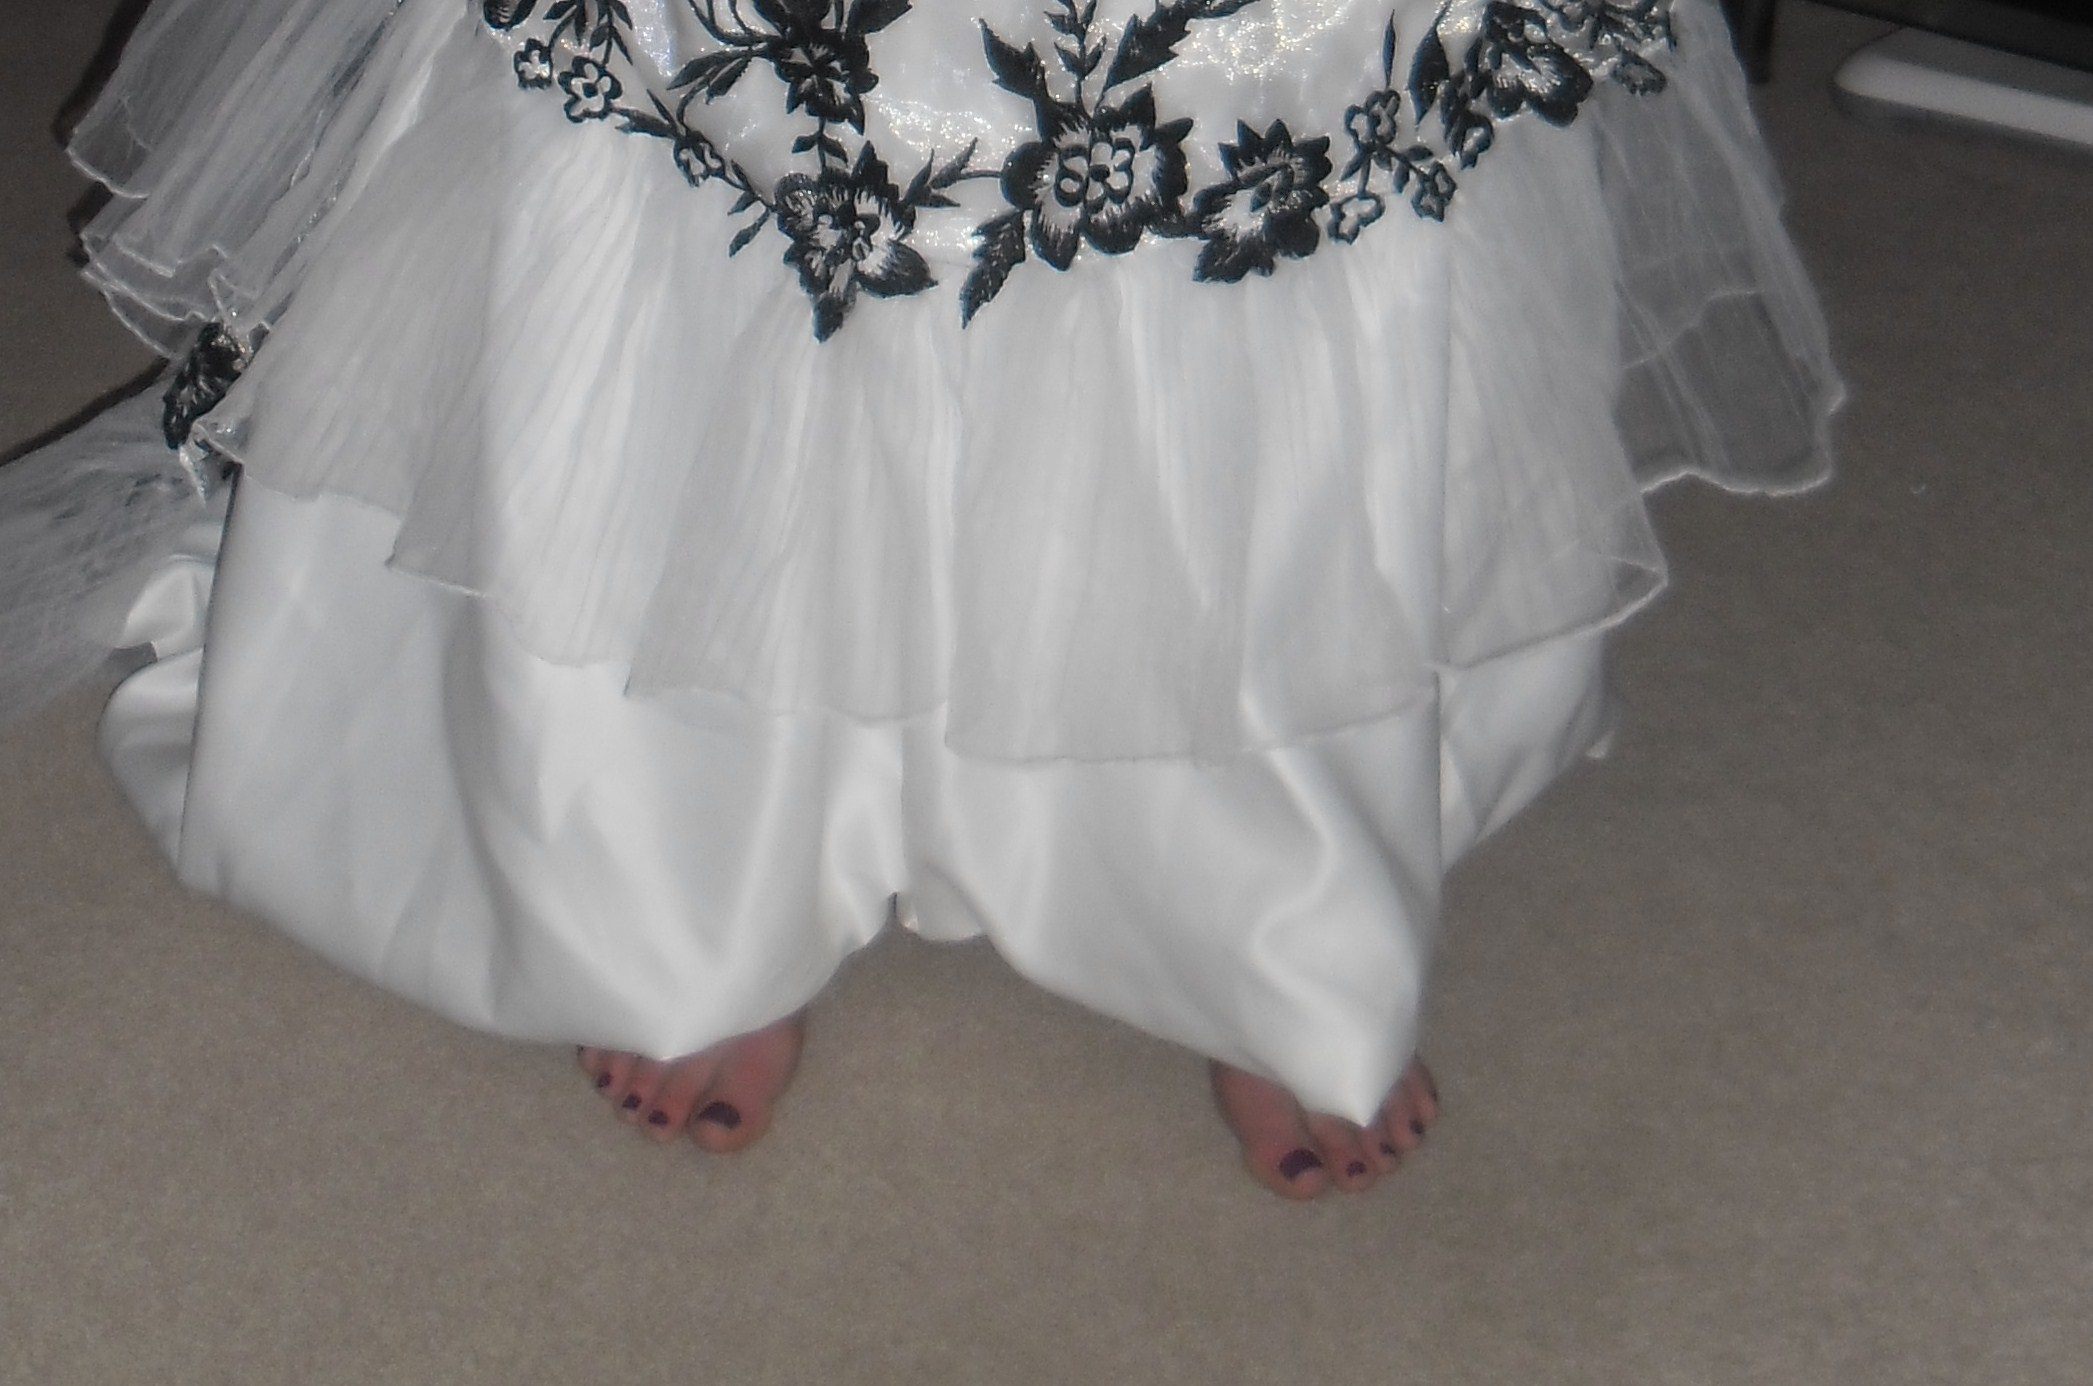 wedding dress ebay Report Inappropriate Content